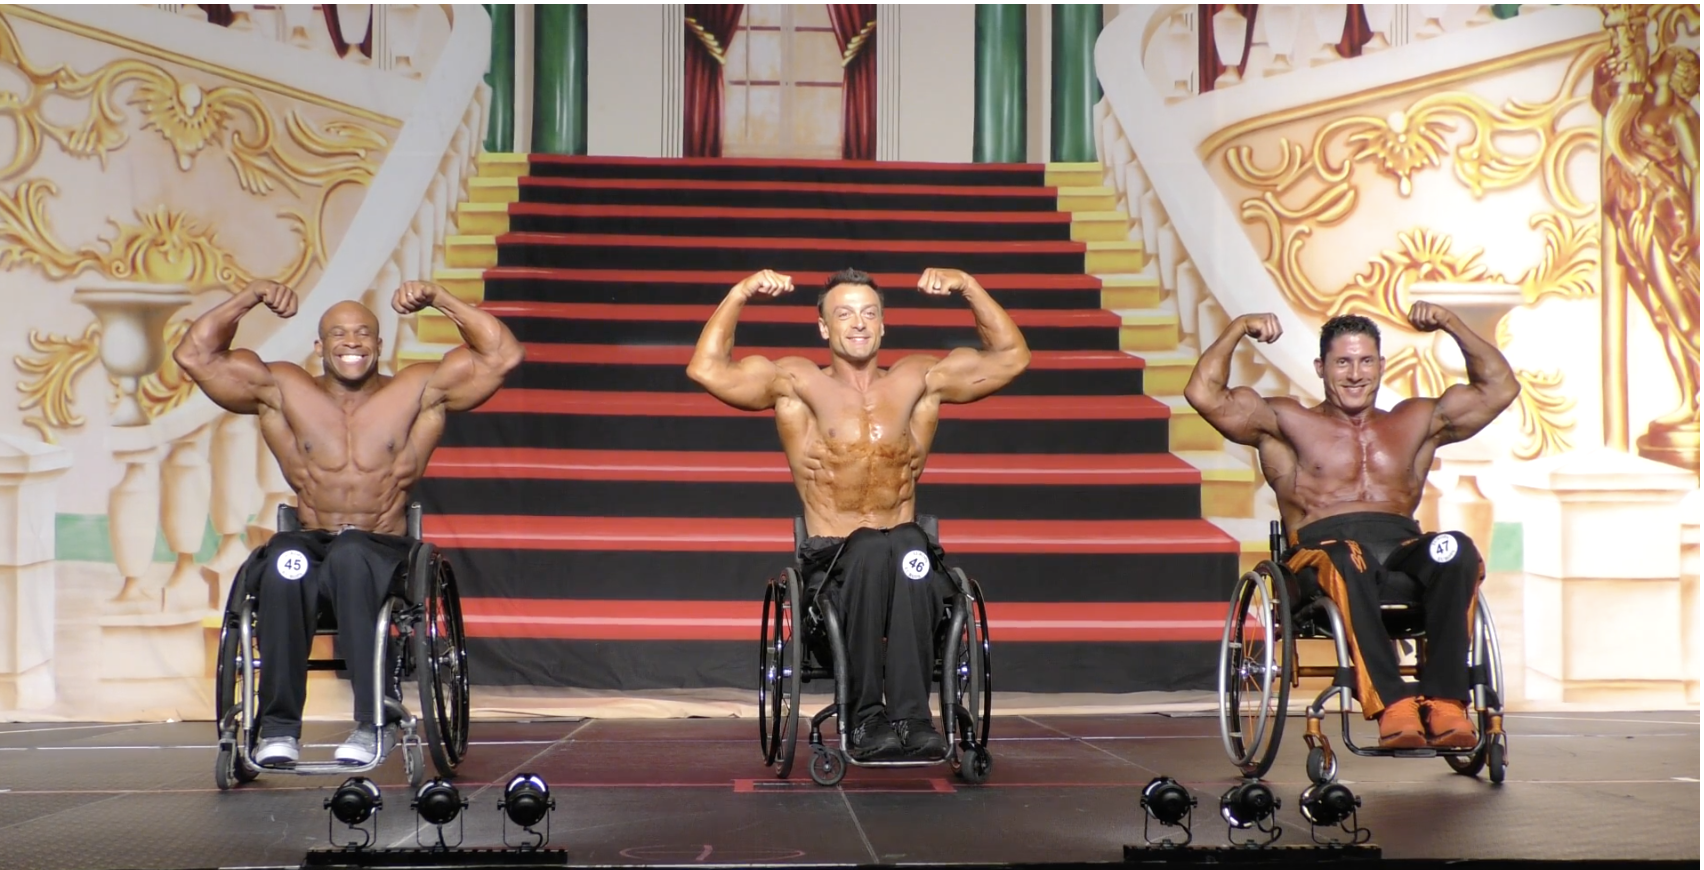 2017 IFBB Europa Dallas Wheelchair Comparisons Video